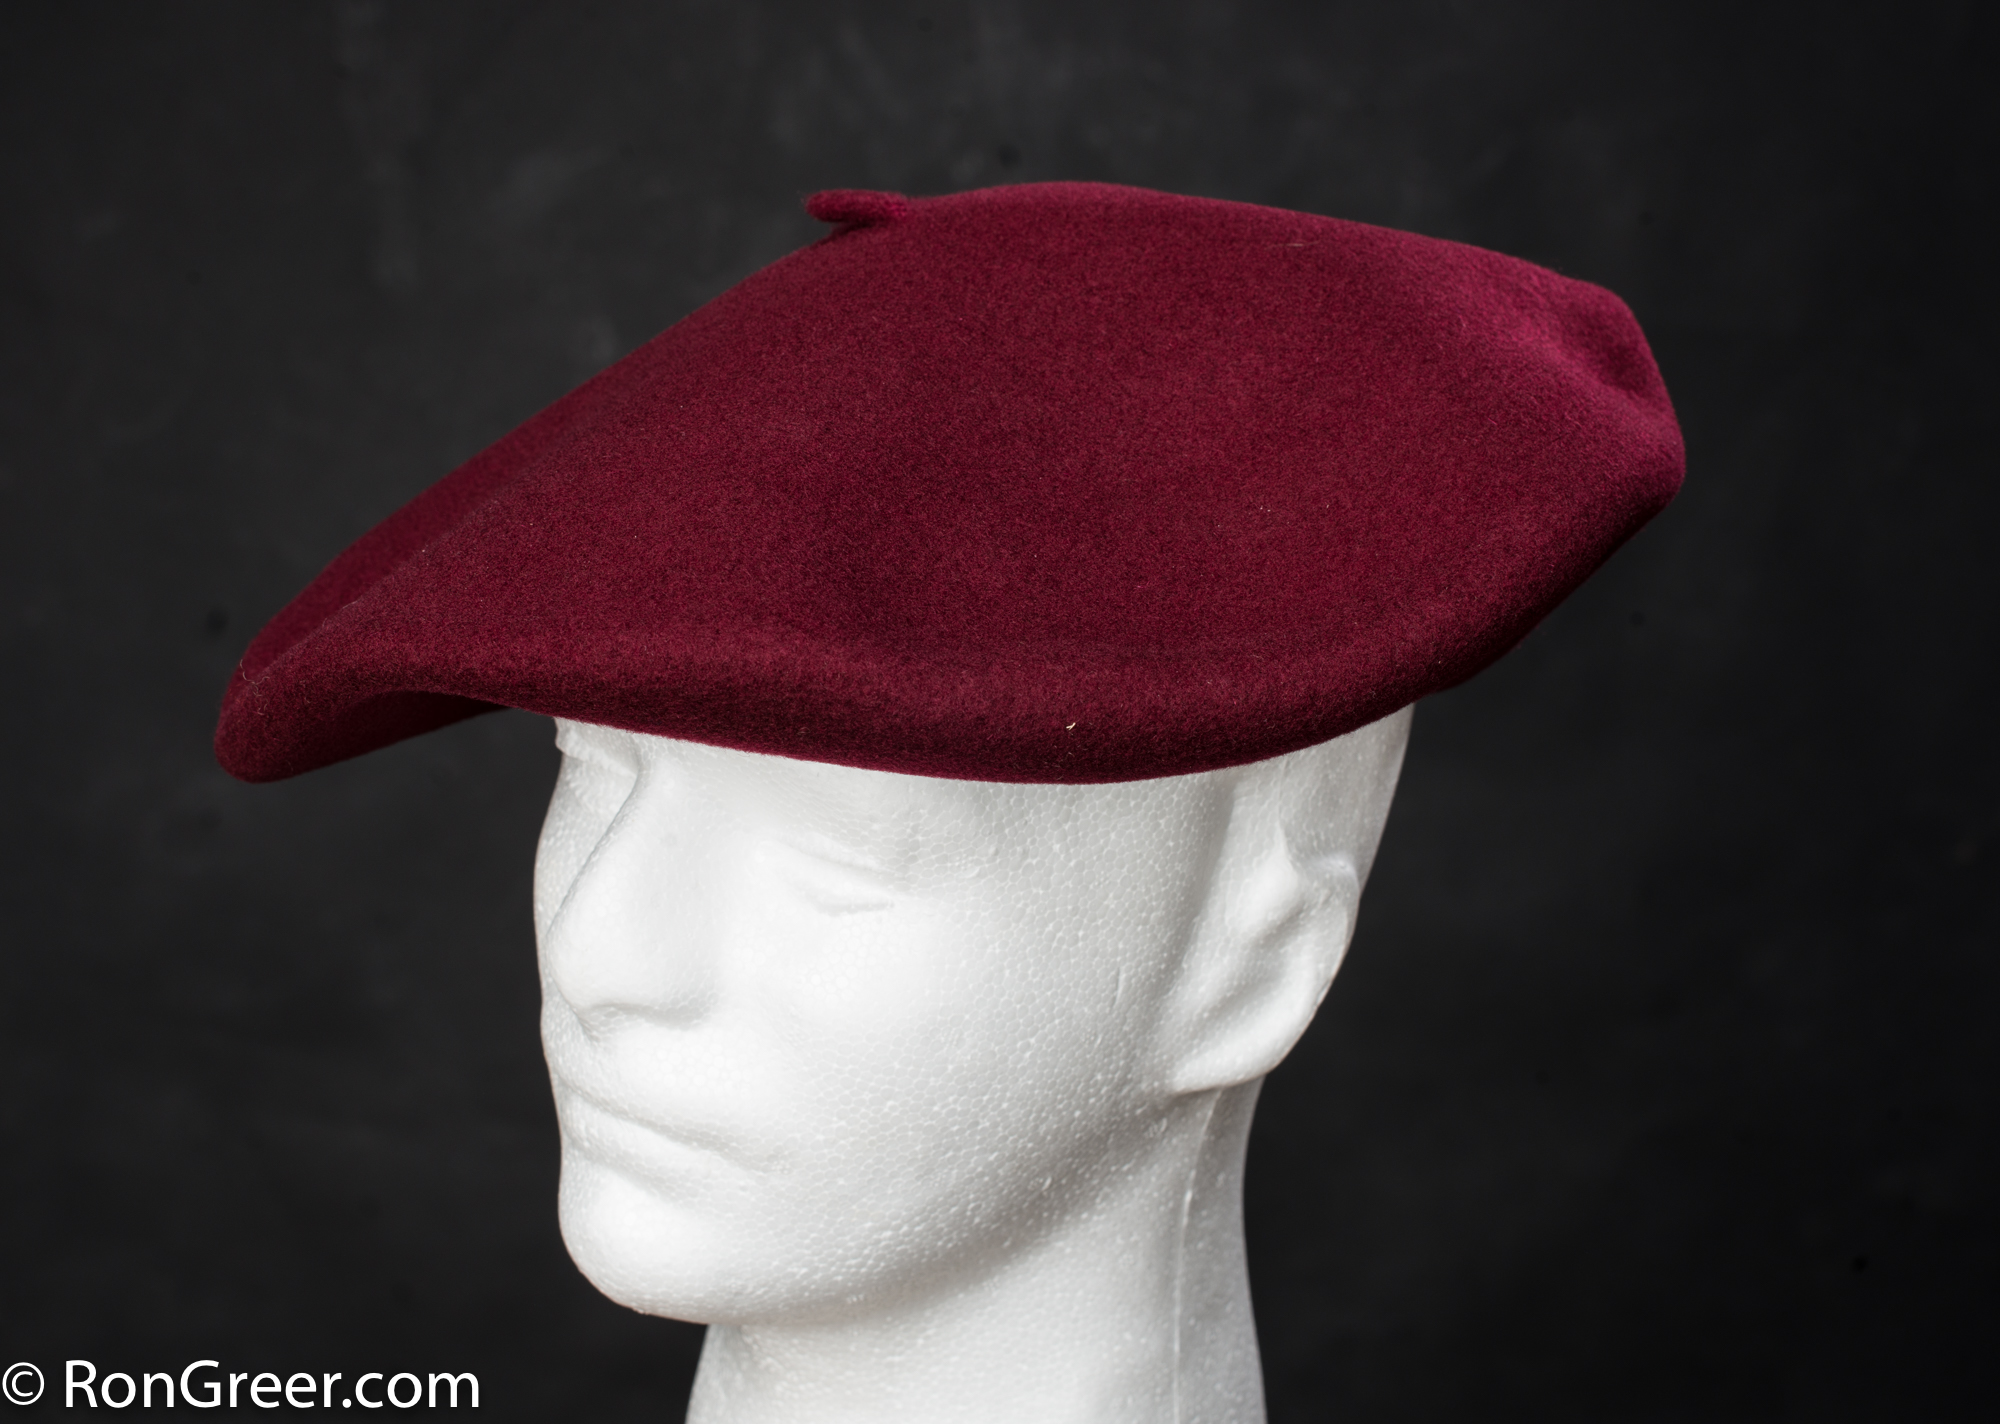 38601f181b4 Berets from the Basque region of Spain. Imported by Ron Greer ...